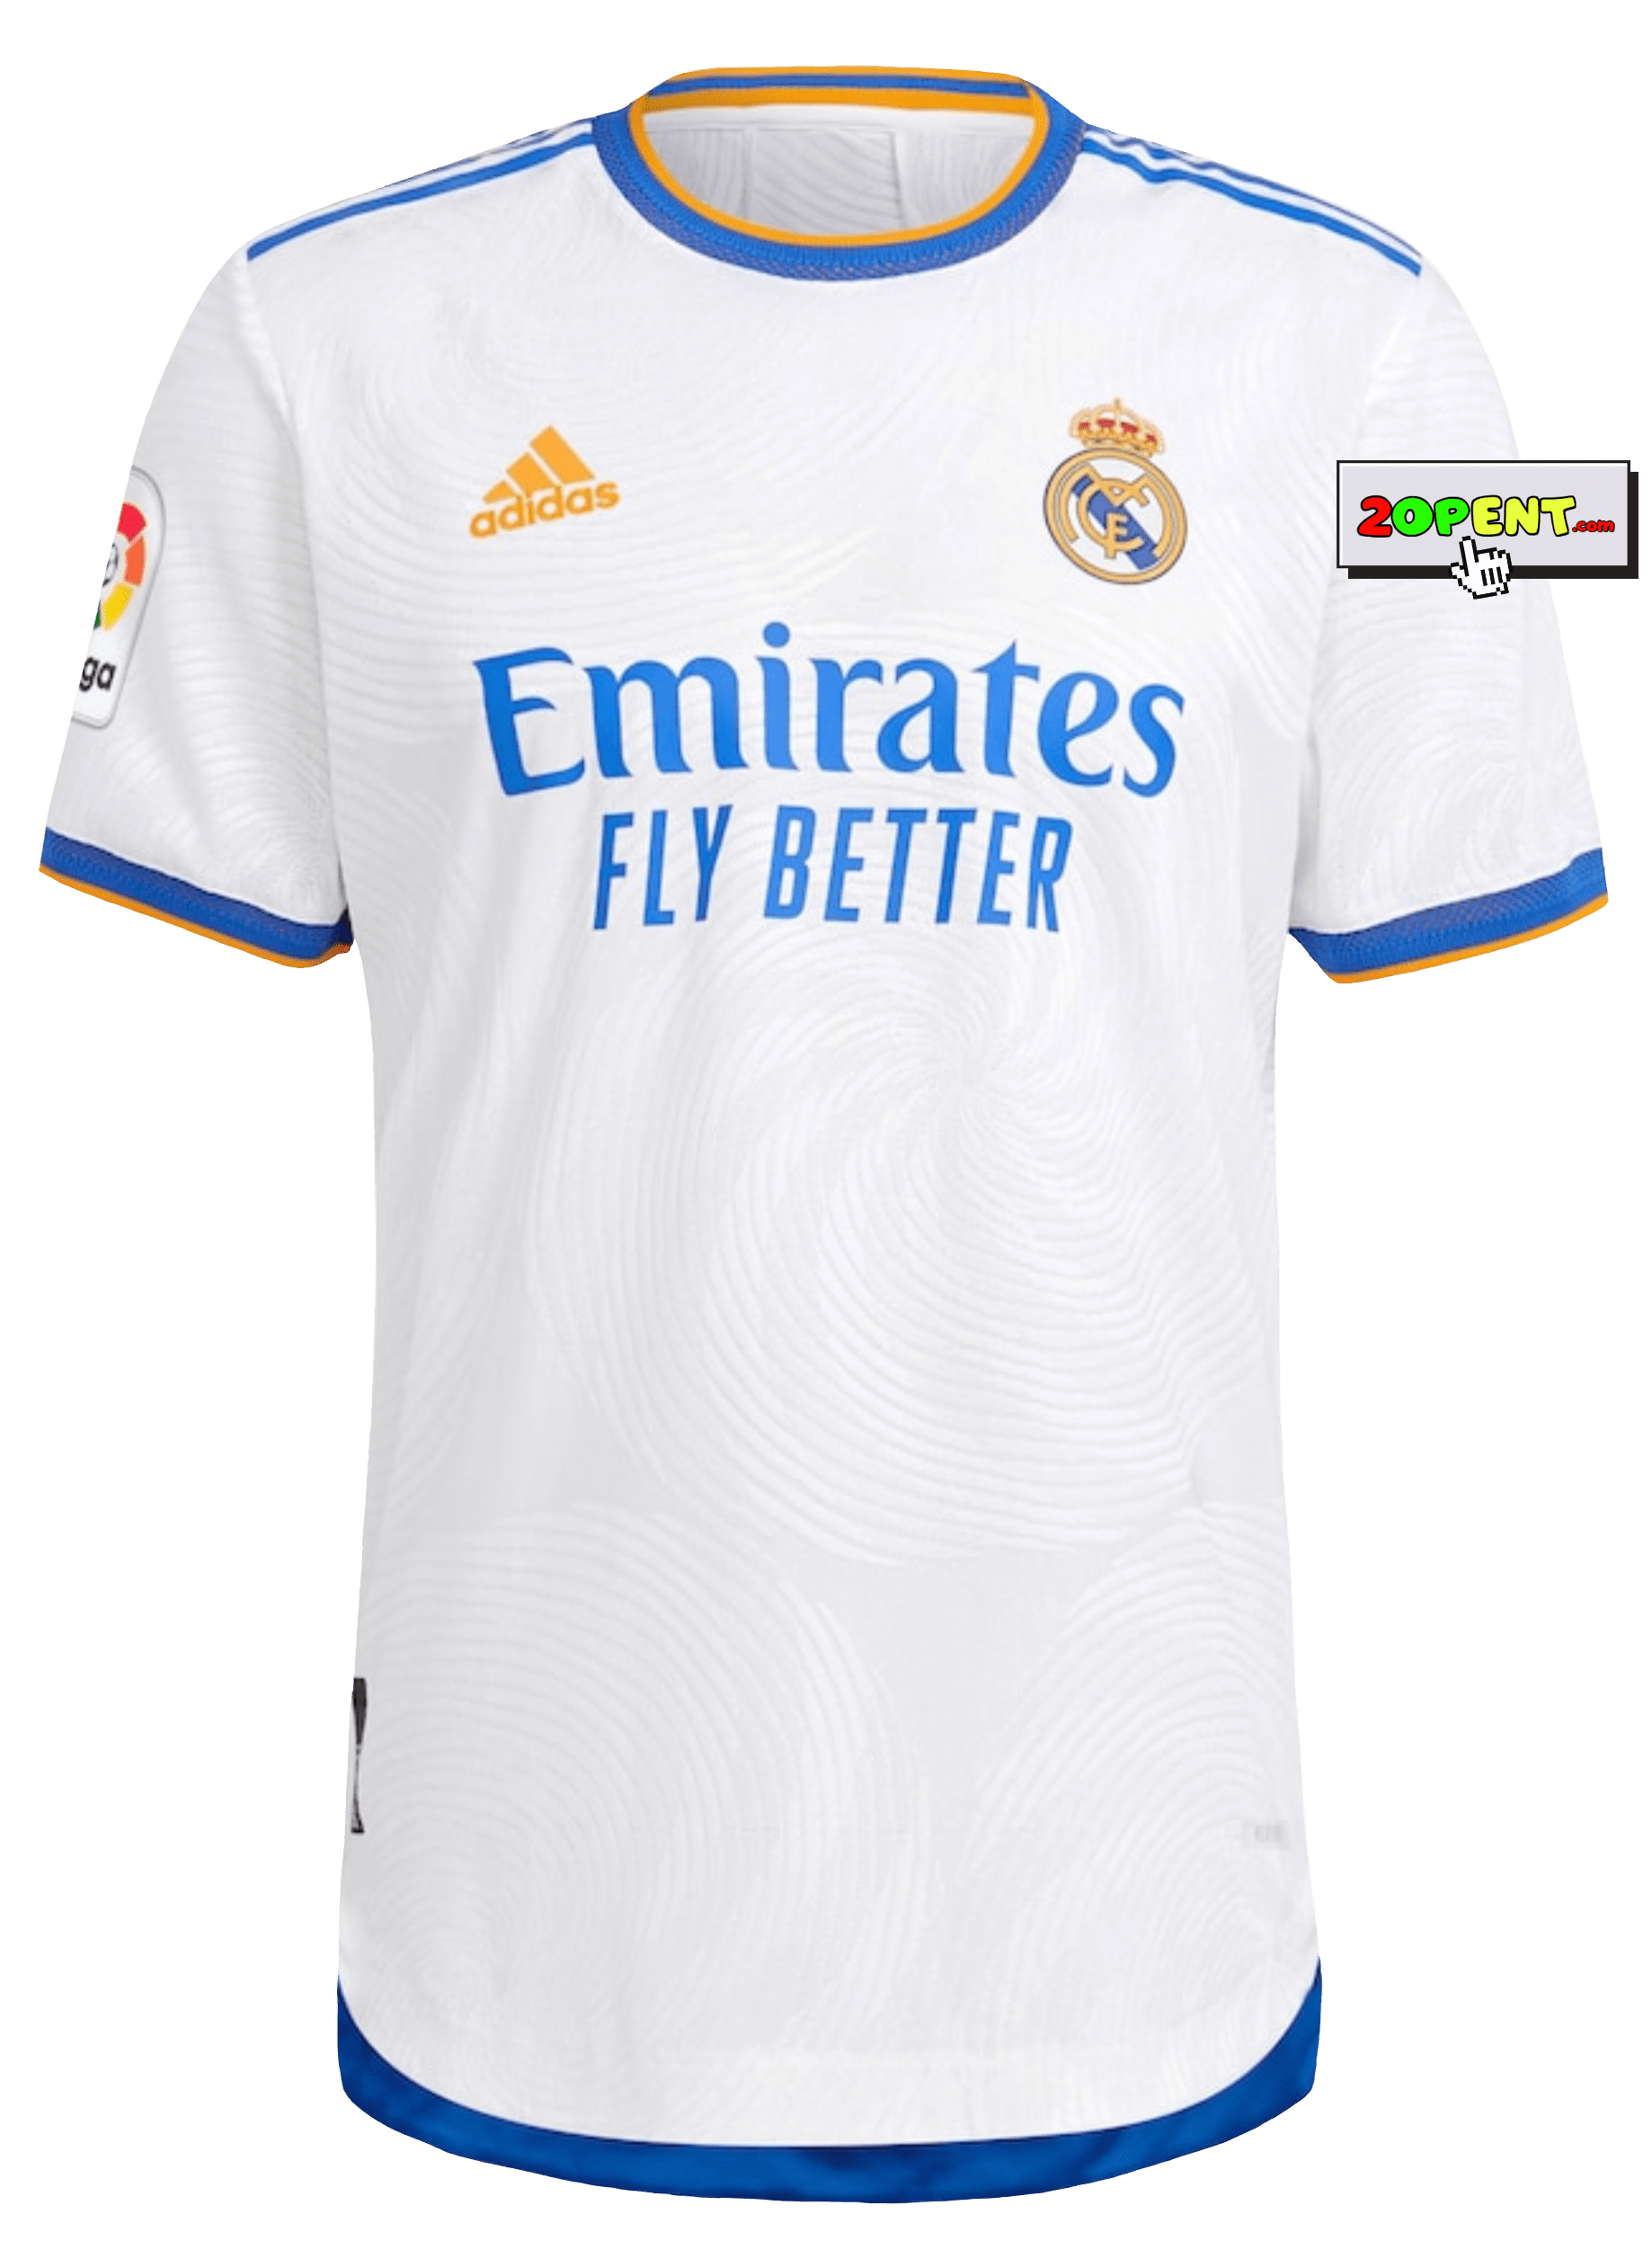 Real Madrid Jersey Adidas 2021 Home Authentic Playera White